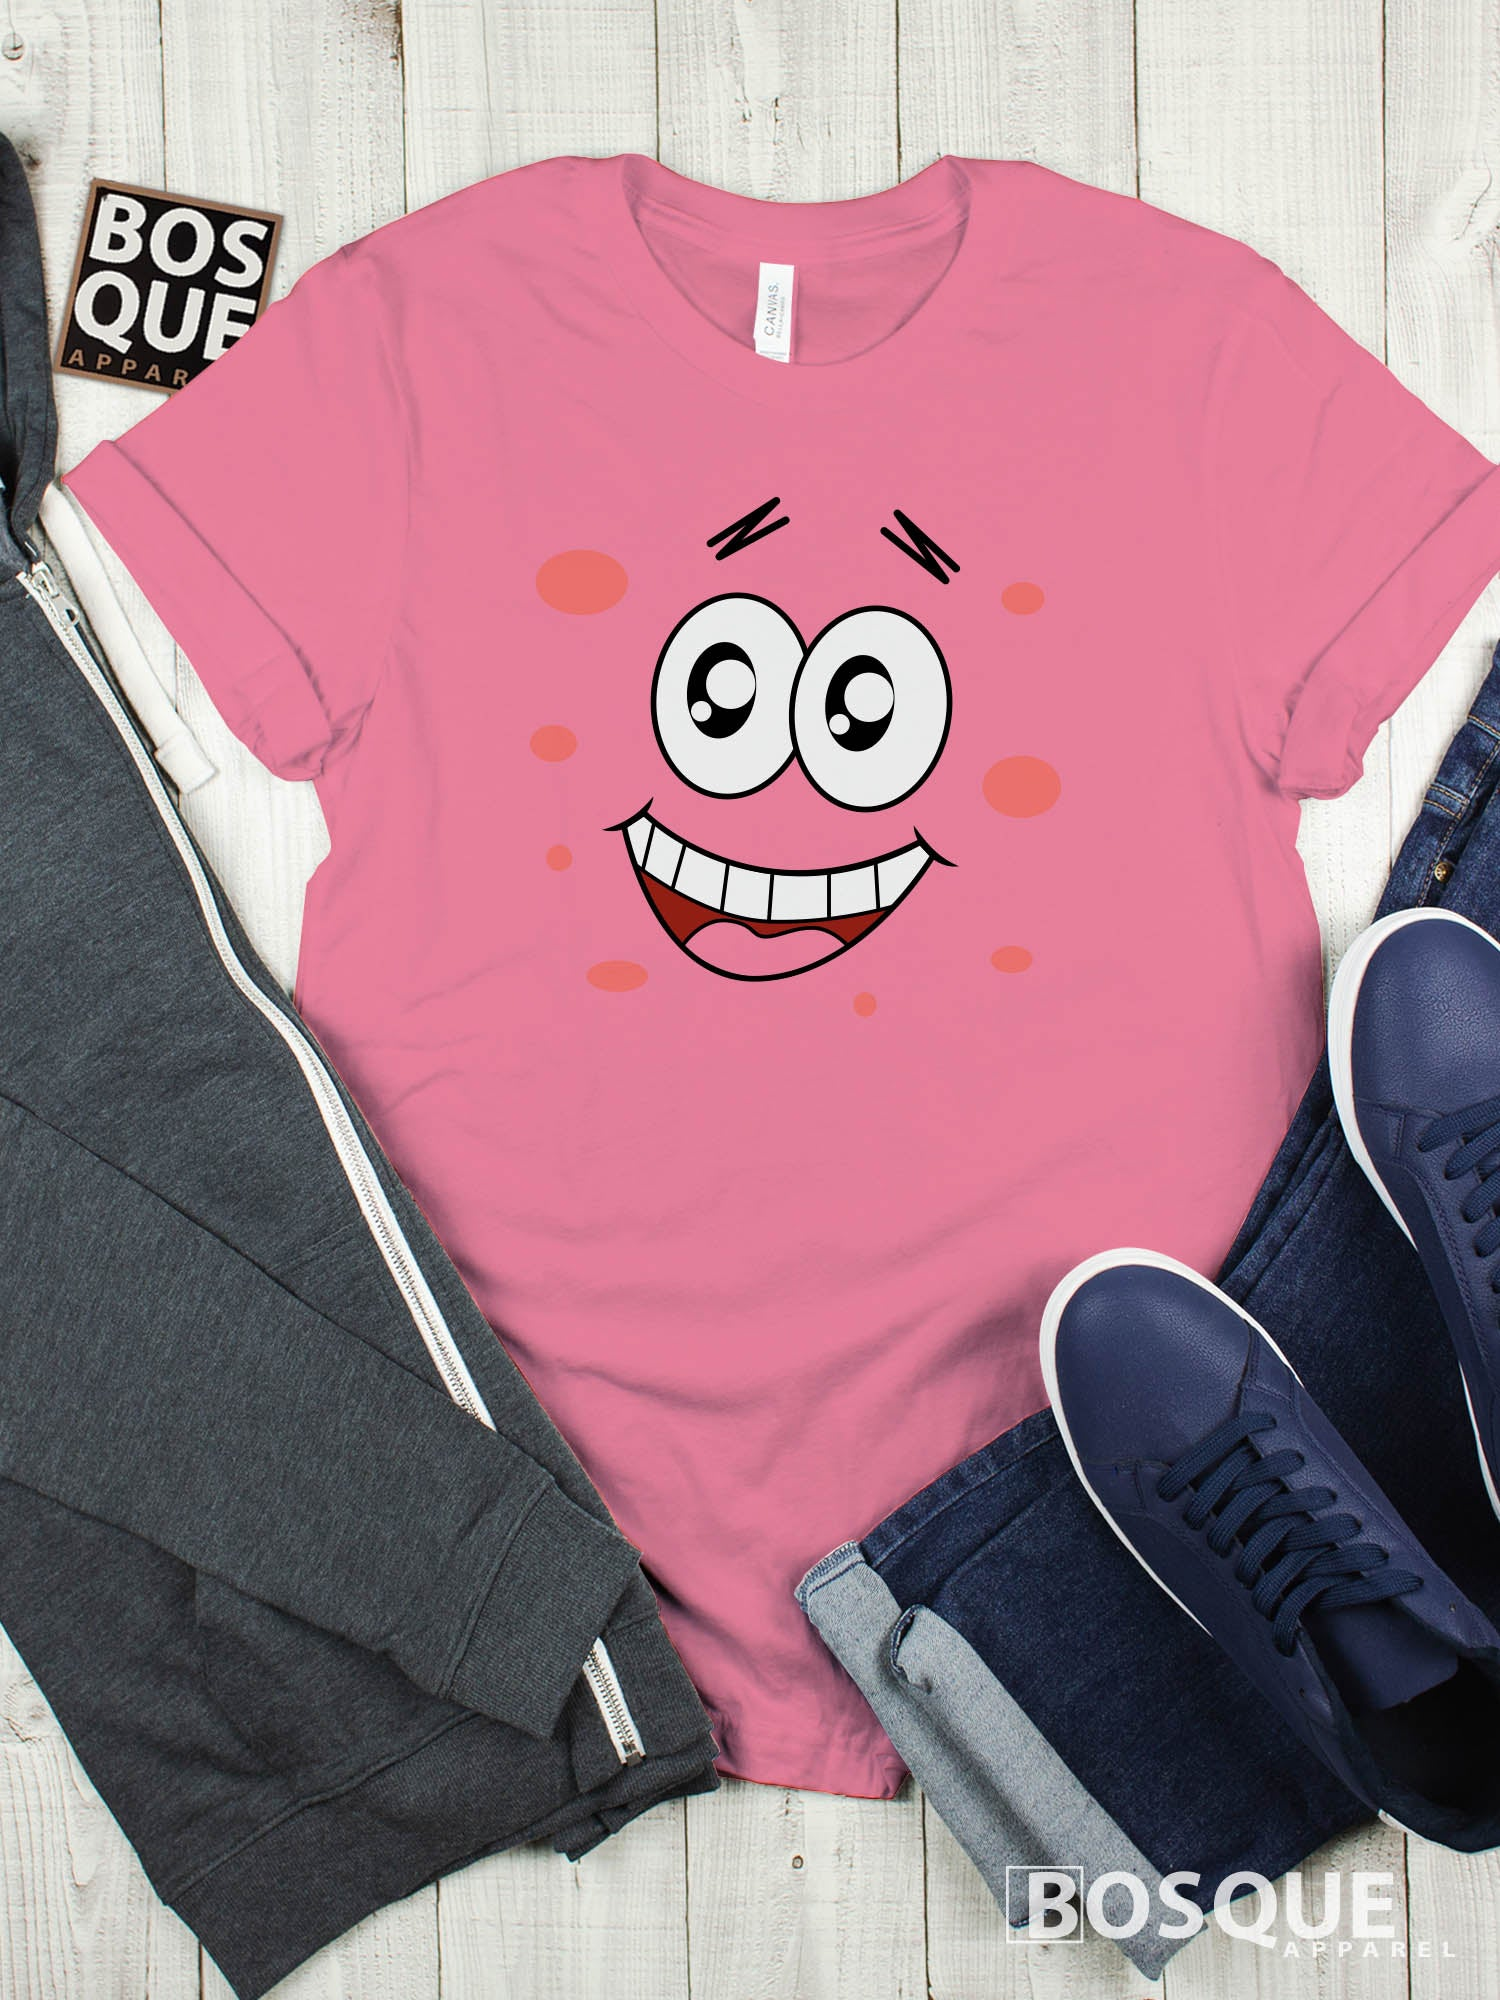 Spongebob & Friends Patrick Star Face Premium Tee | Long Tee Shirt | Hoodie | Sweatshirt | Tank-Top …